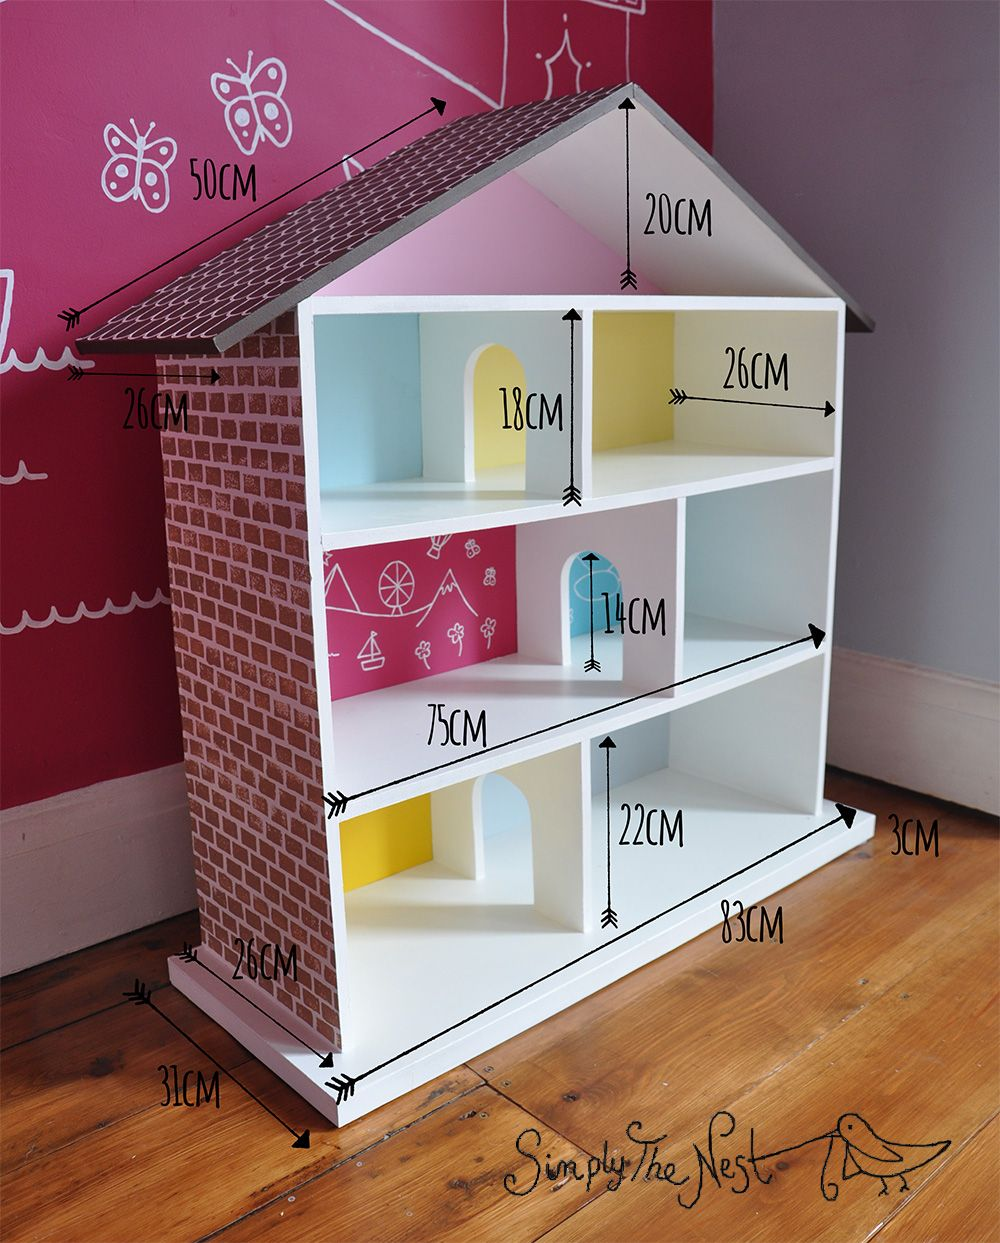 How To Make A Diy Dollhouse For A Toddler Doll House Plans Diy Barbie House Barbie Doll House